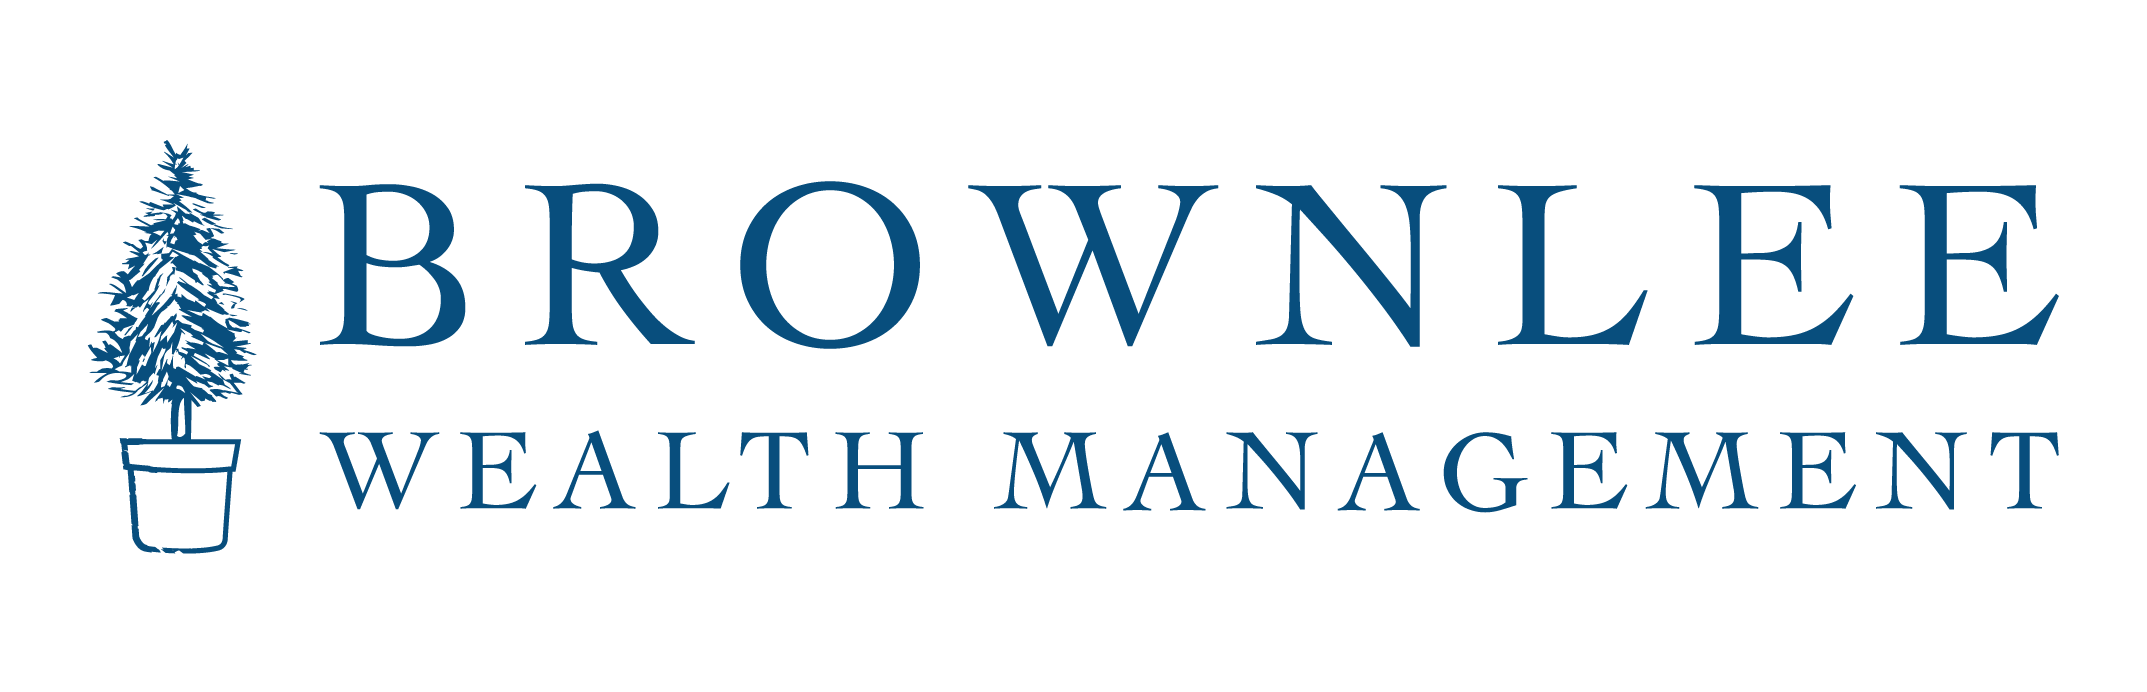 Brownlee Wealth Management